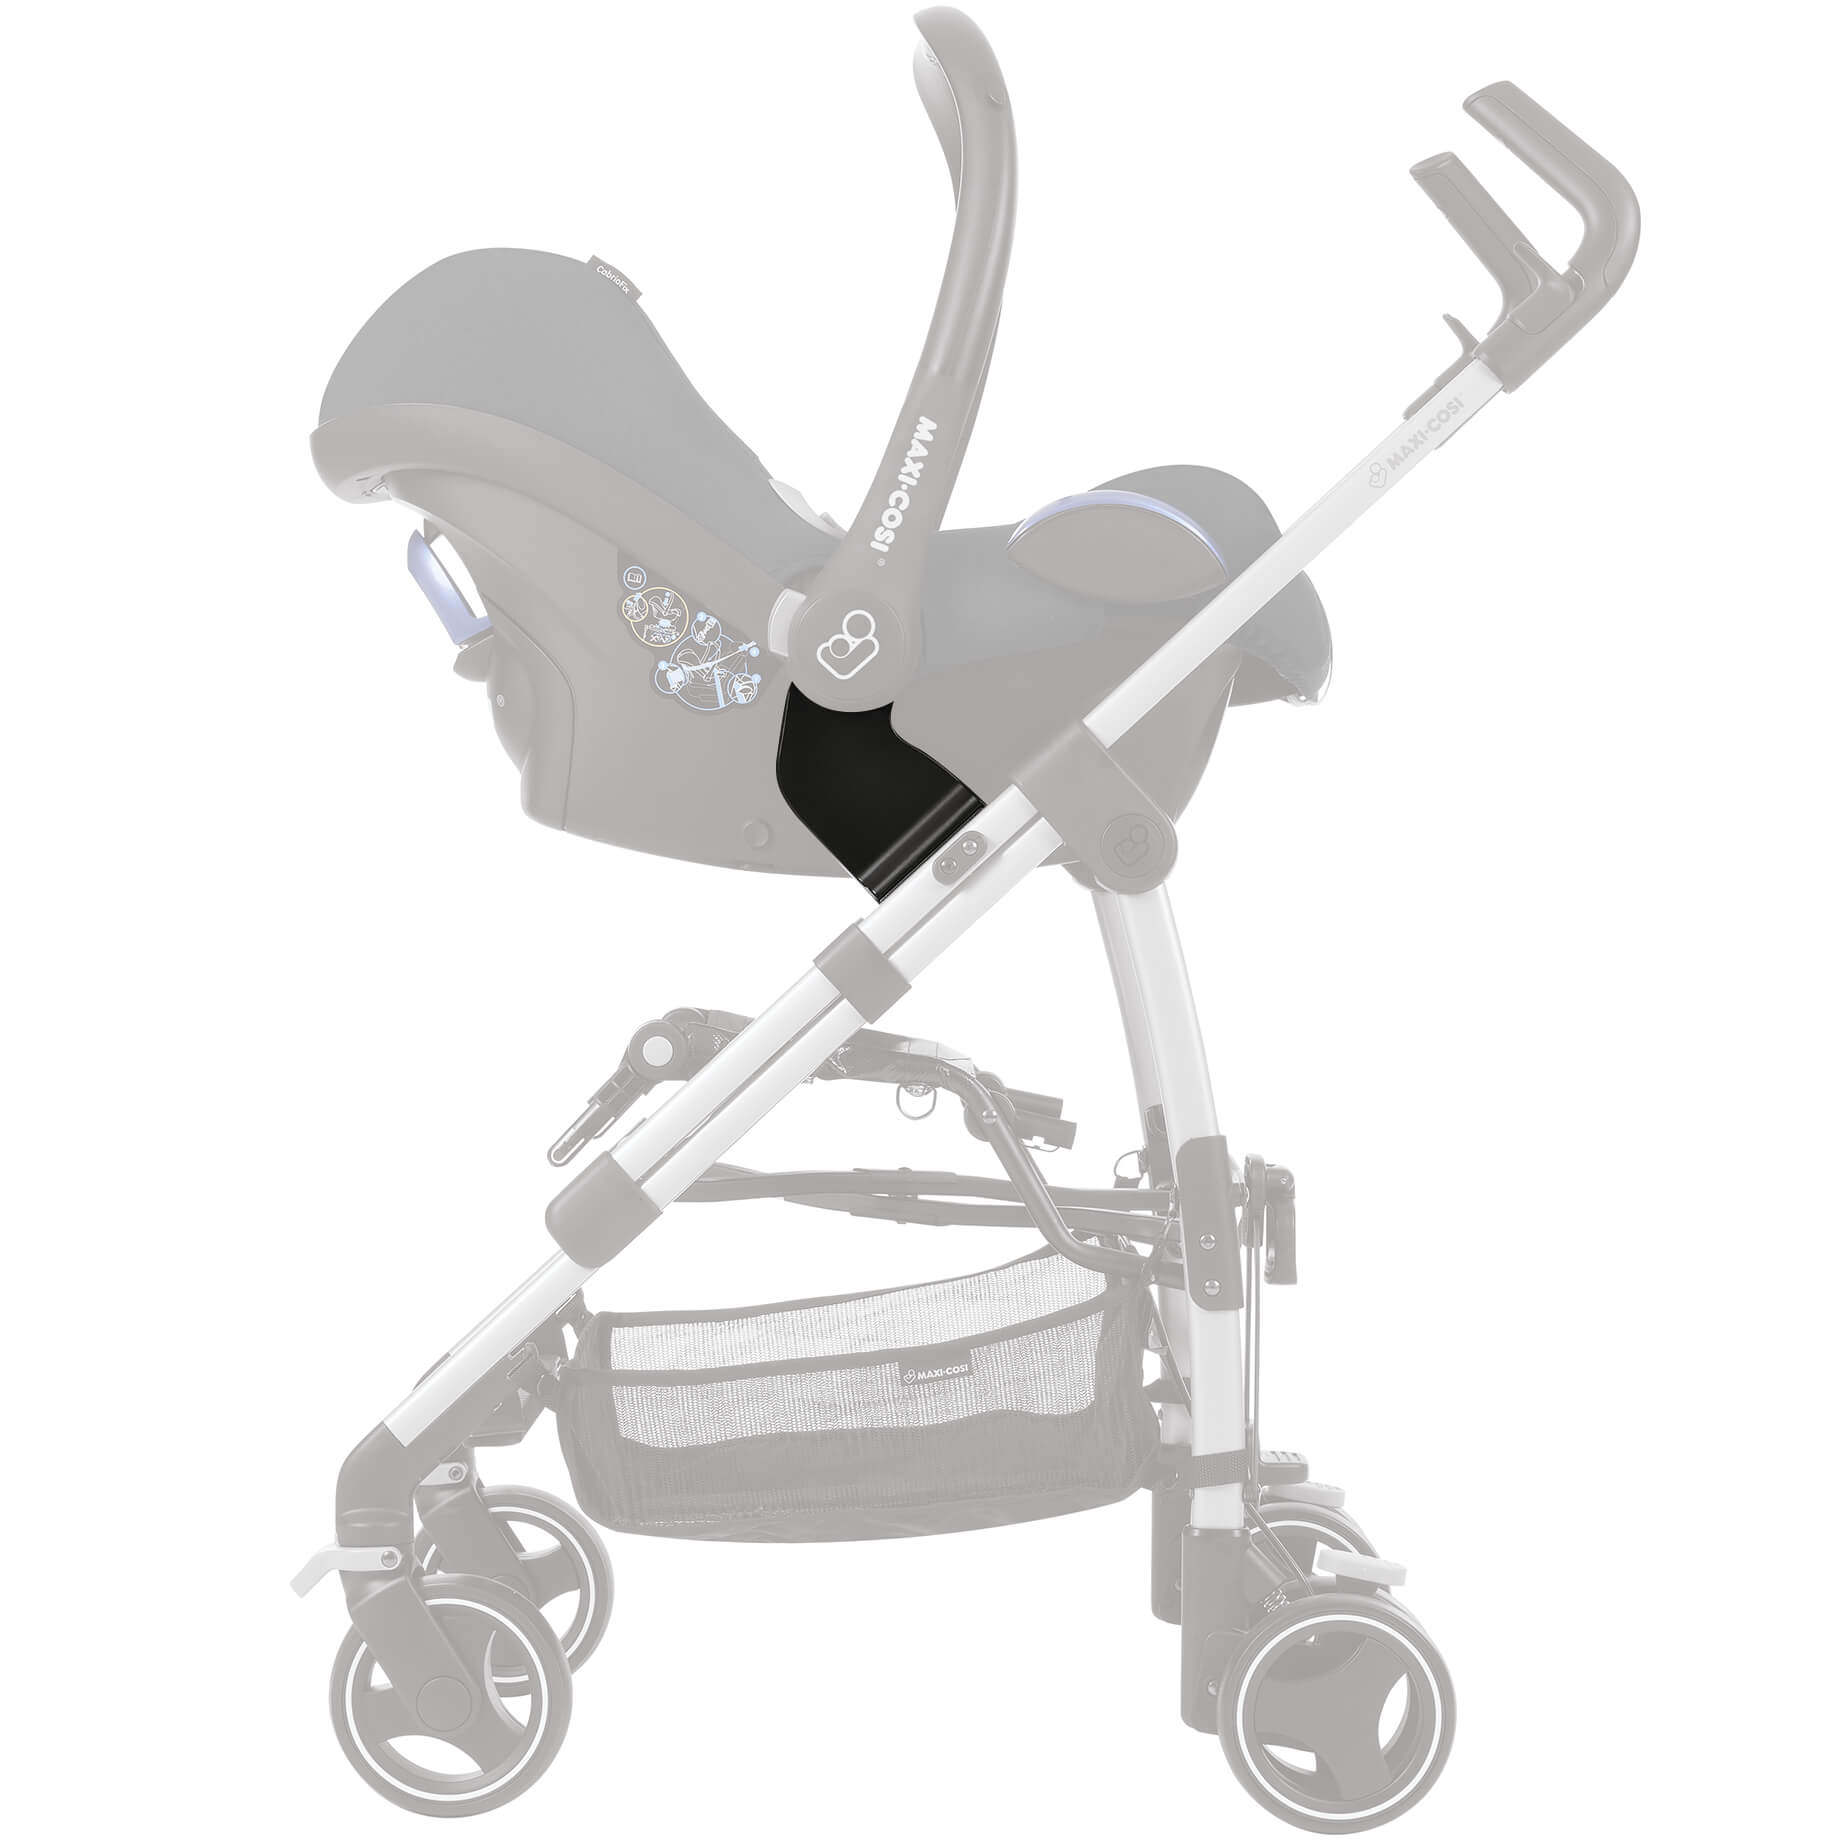 Maxi Cosi Adapter Set Fur Babyschale Auf Dana Buggy